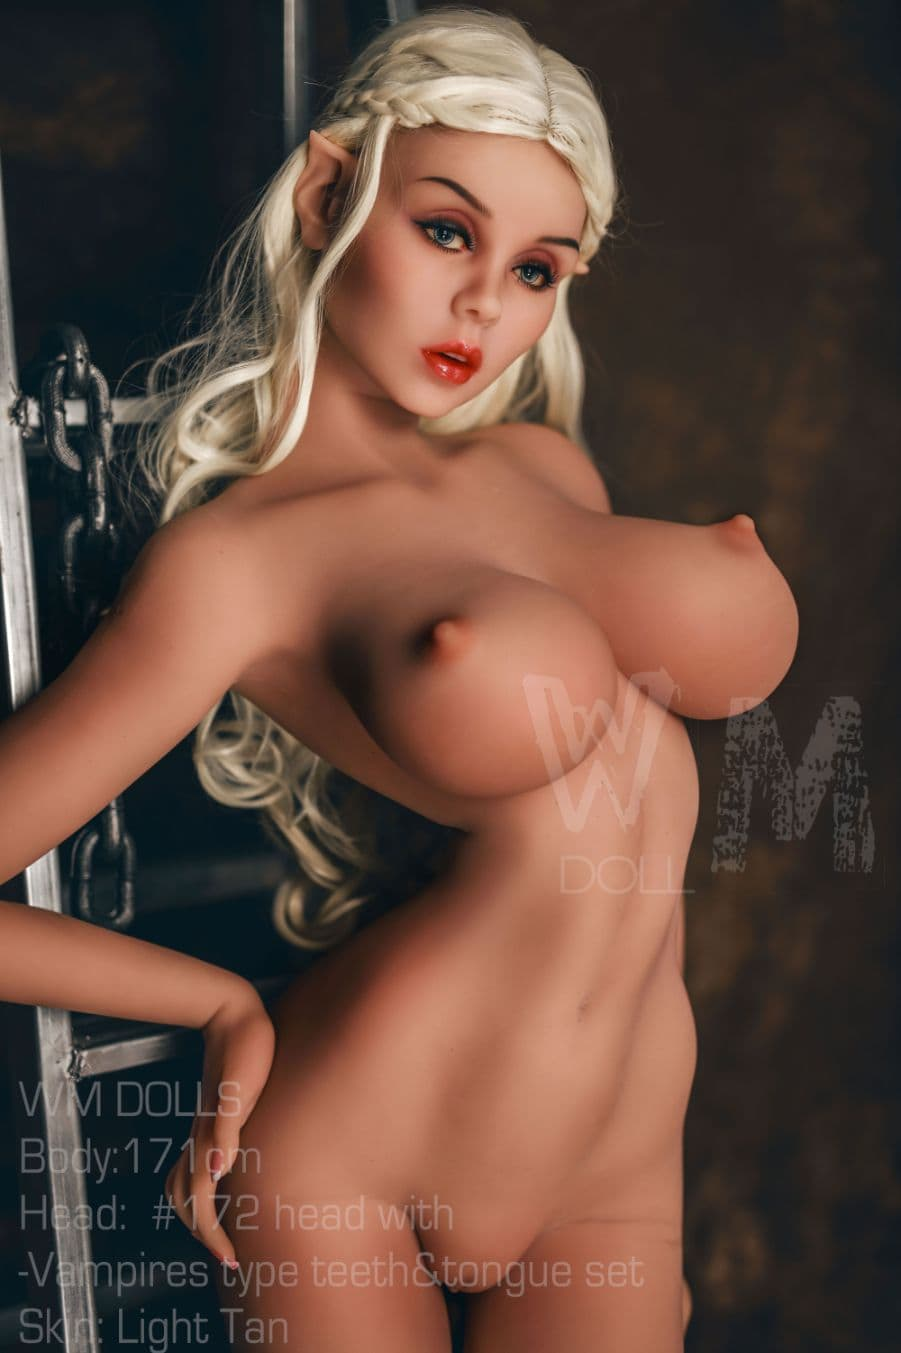 meaghan 171cm 5ft6 blonde fantasy featured big boobs tpe wm sex doll(11)